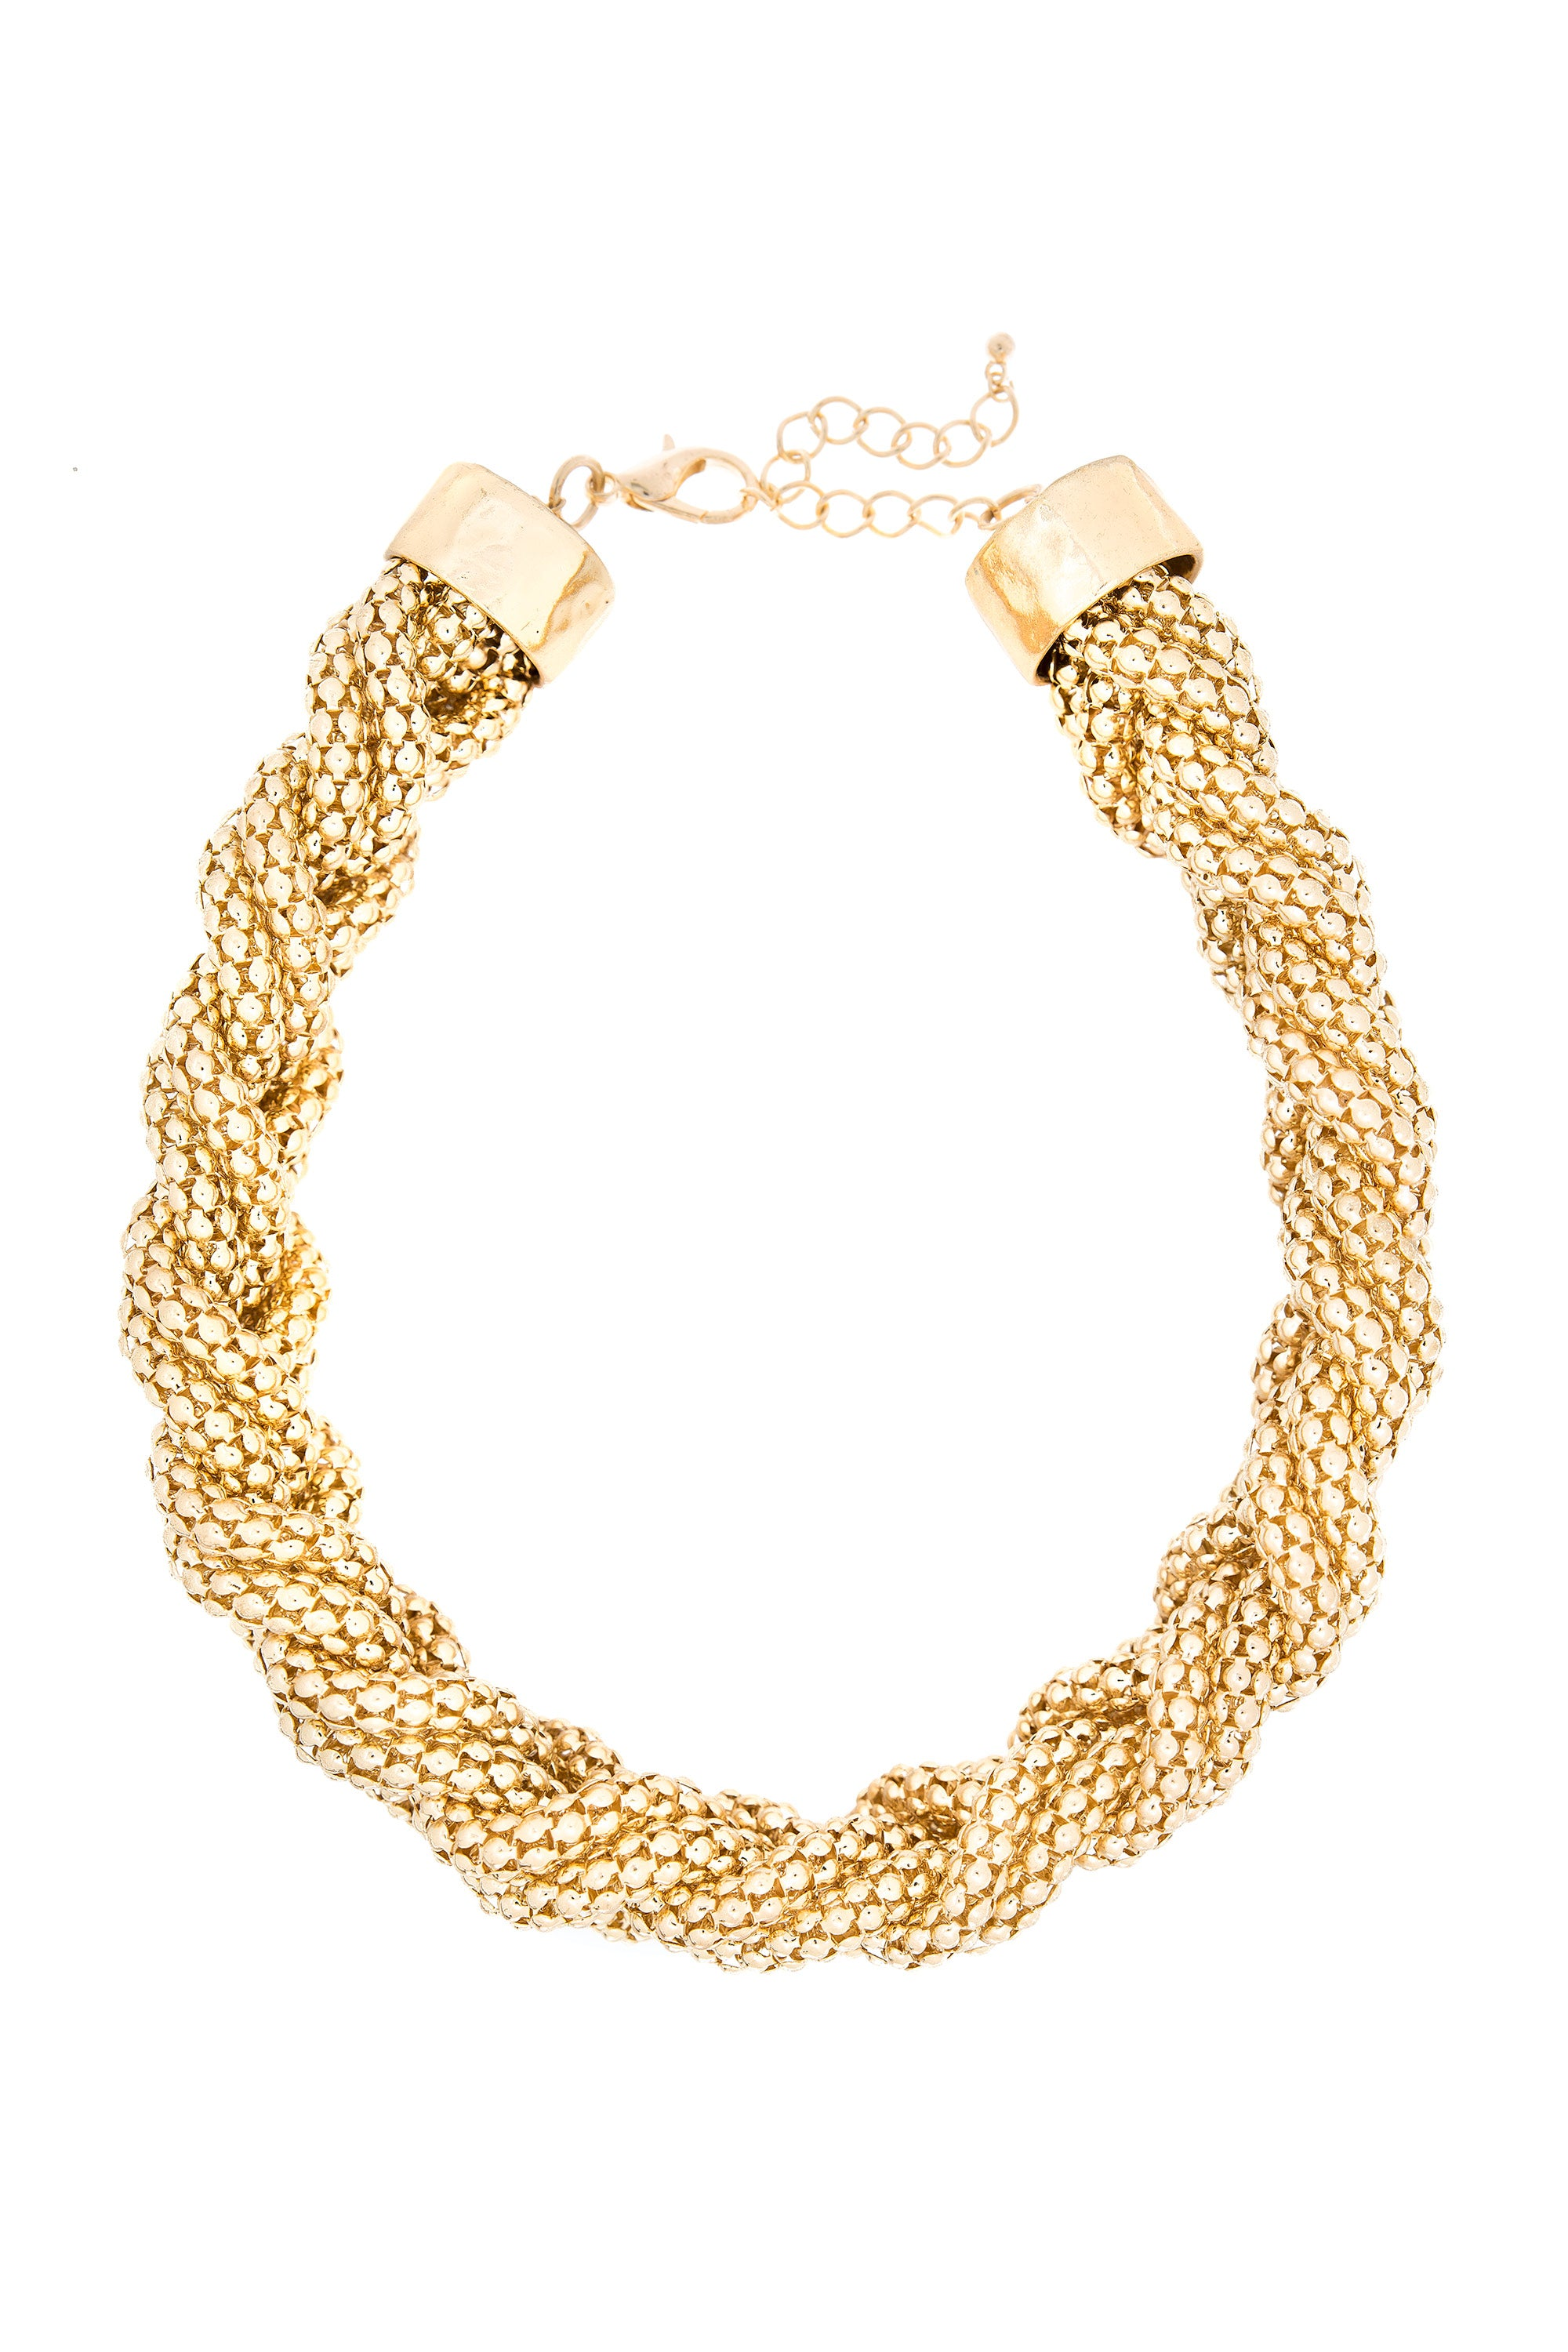 Type 3 Brassy Braid Necklace